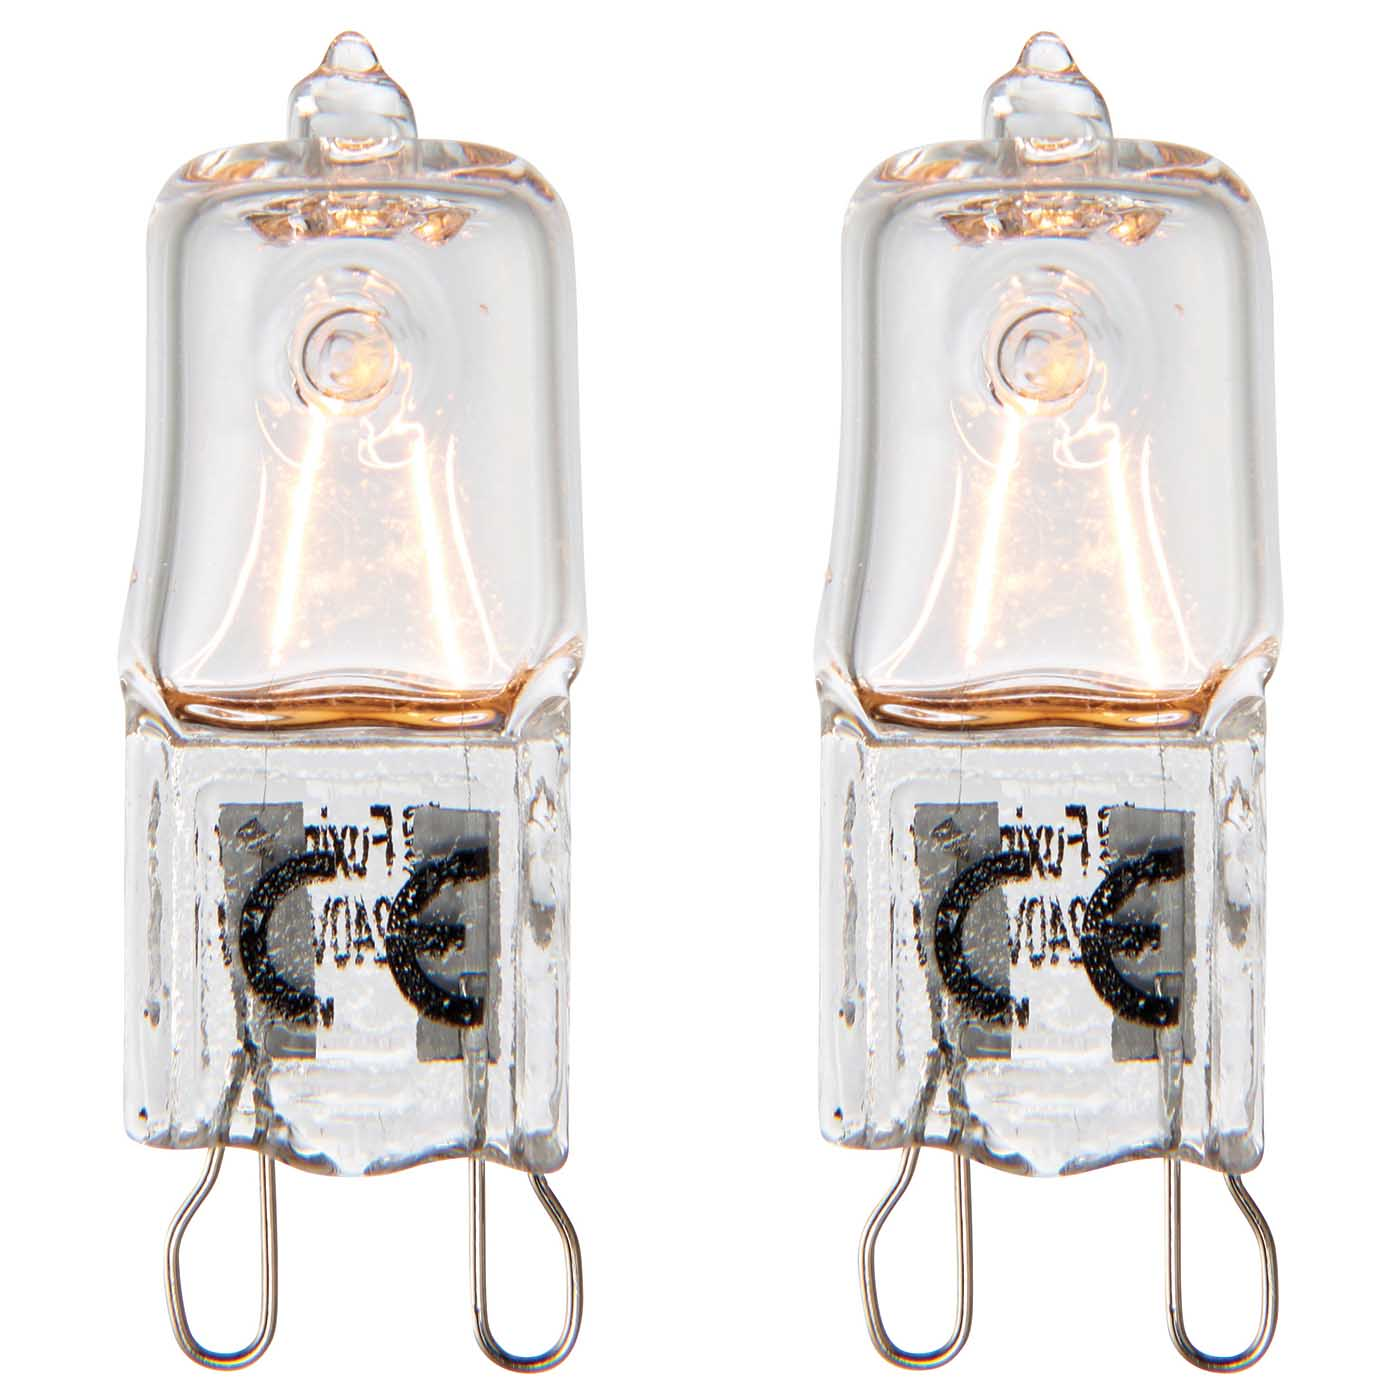 Saxby G9 eco halogen capsule light bulb dimmable twin pack 18W warm white 3000K